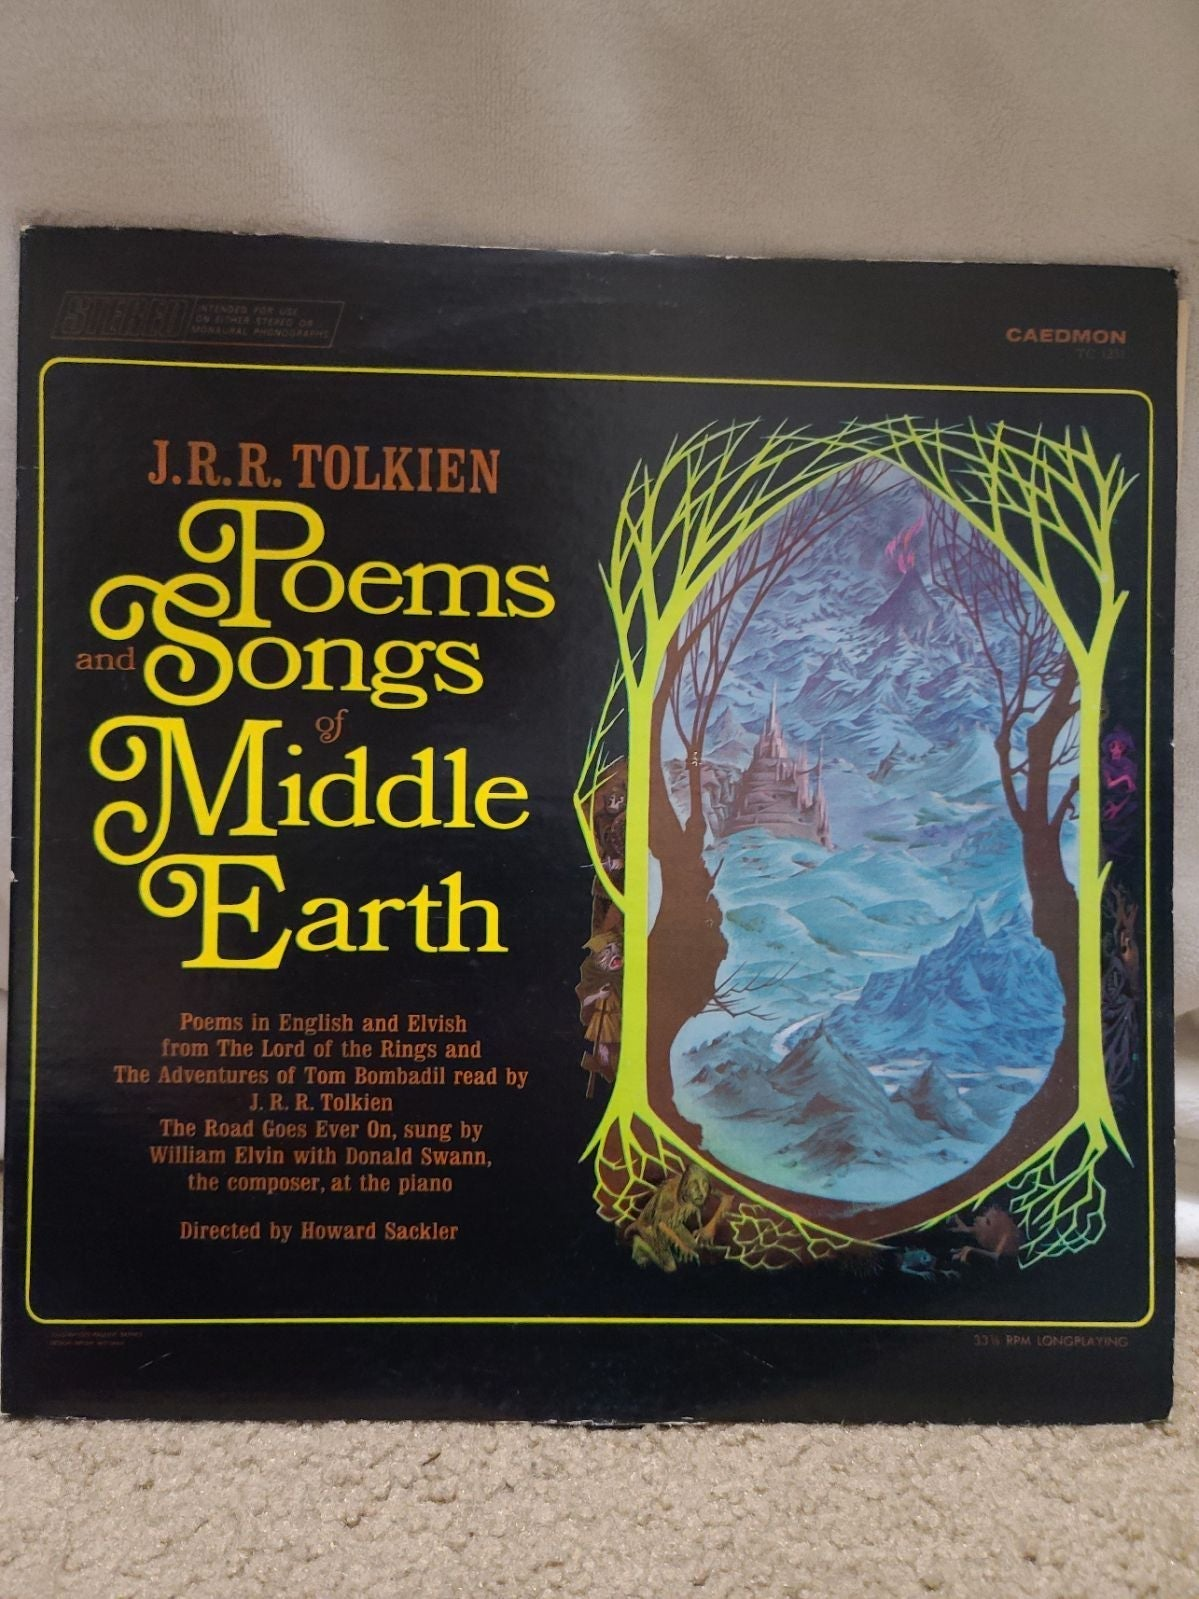 J.R.R. Tolkien - Poems and Songs of Midd